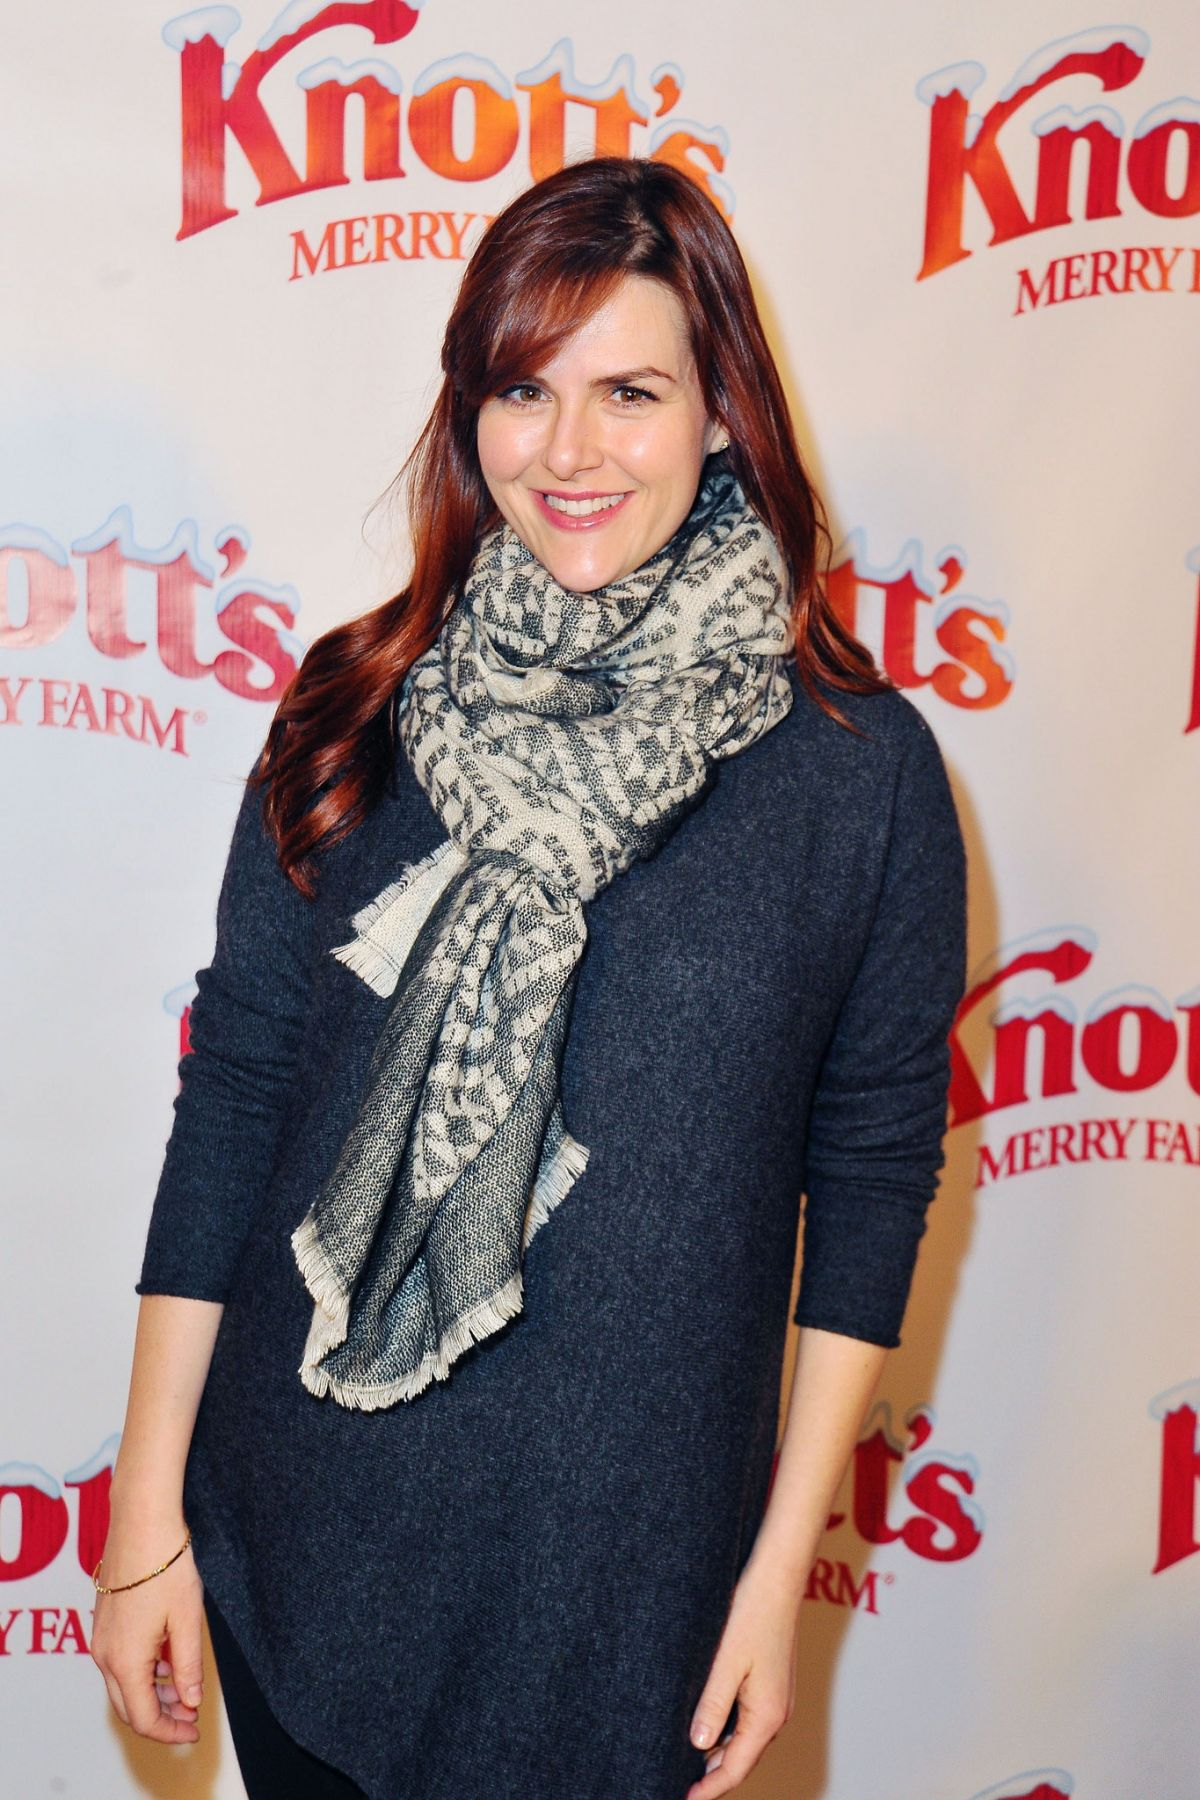 SARA RUE at Knott's Merry Farm Countdown to Christmas and Tree Lighting 12/05/2015